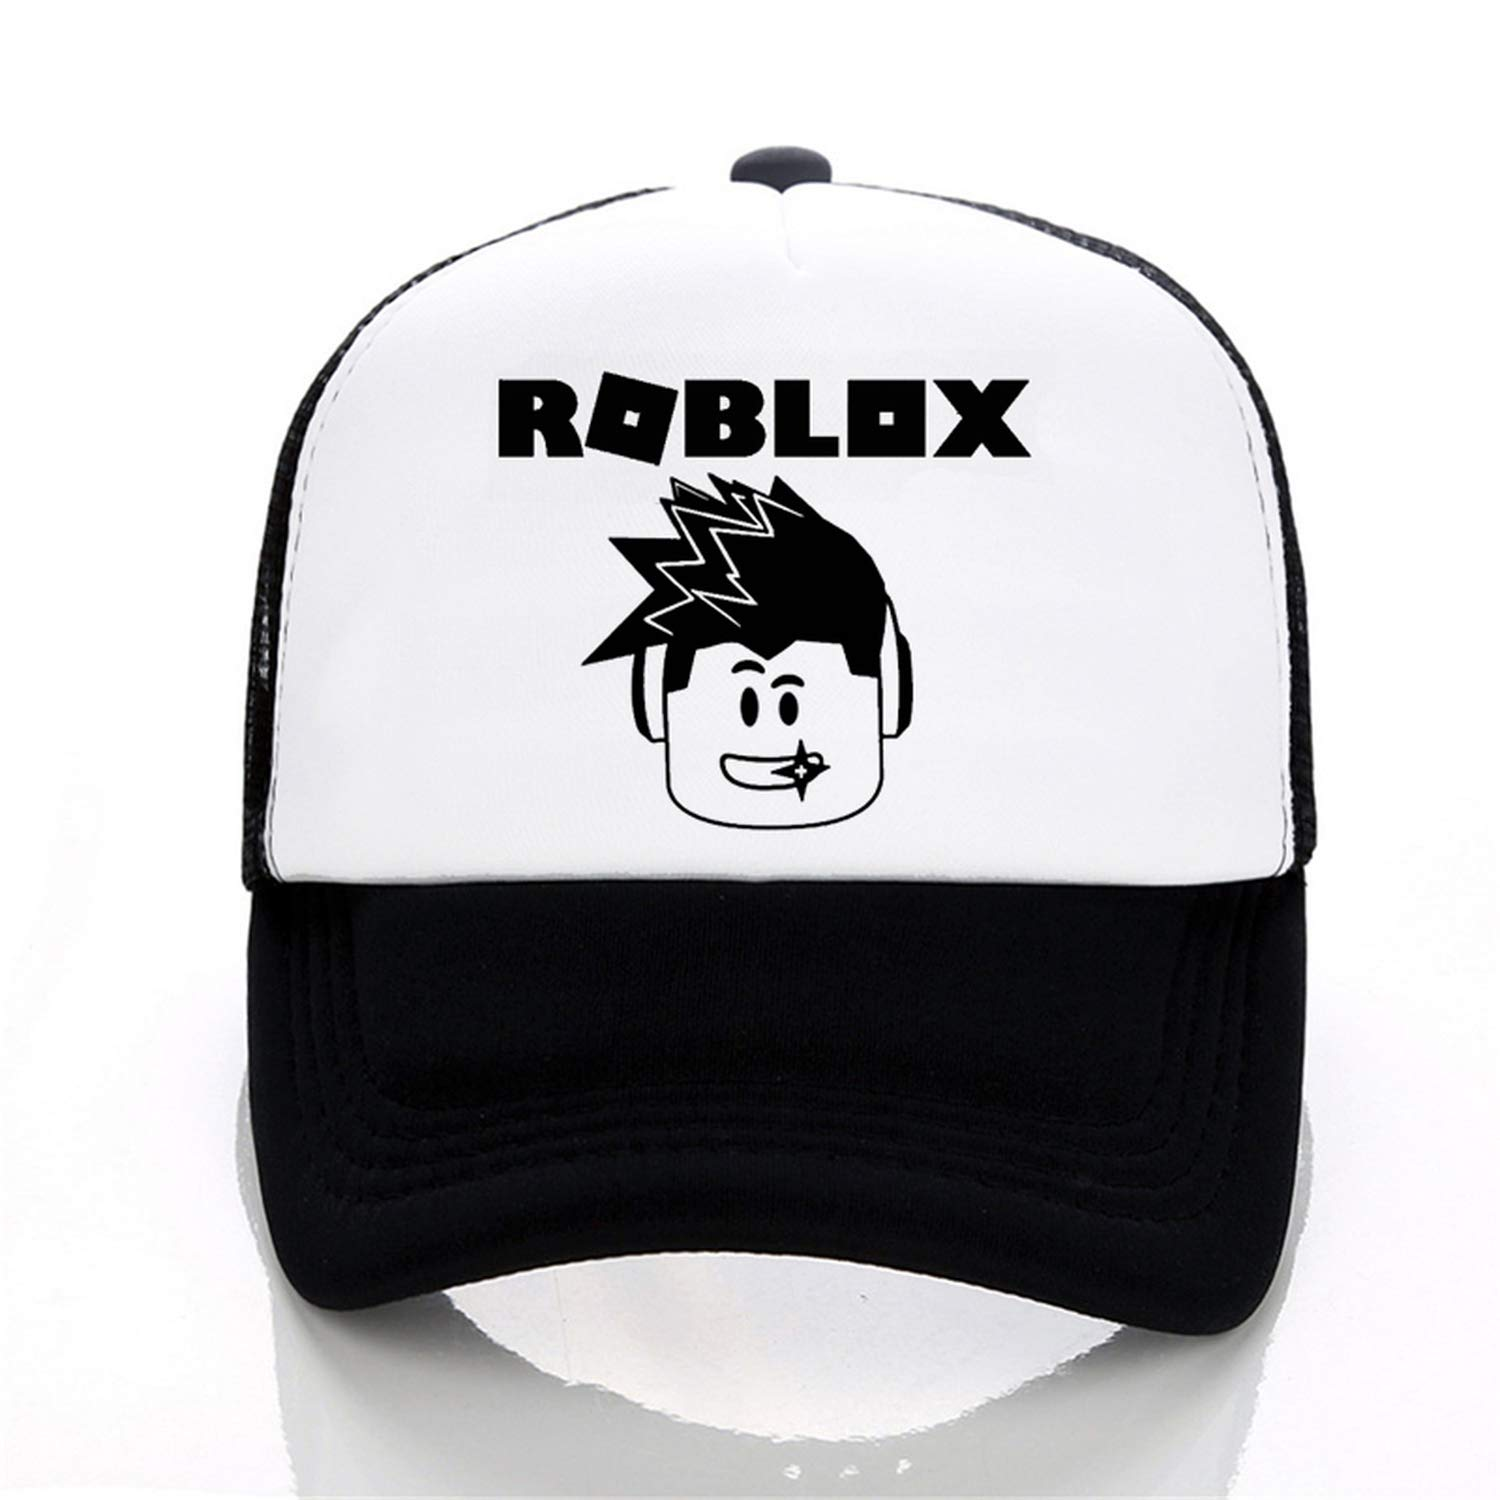 afcfd20b3f5b7 Hot Roblox hat Games Rock Band Baseball caps Cool Cosplay Cap Unisex Figure  Pointy Summer mesh Snapback Hats Army Green at Amazon Women s Clothing  store